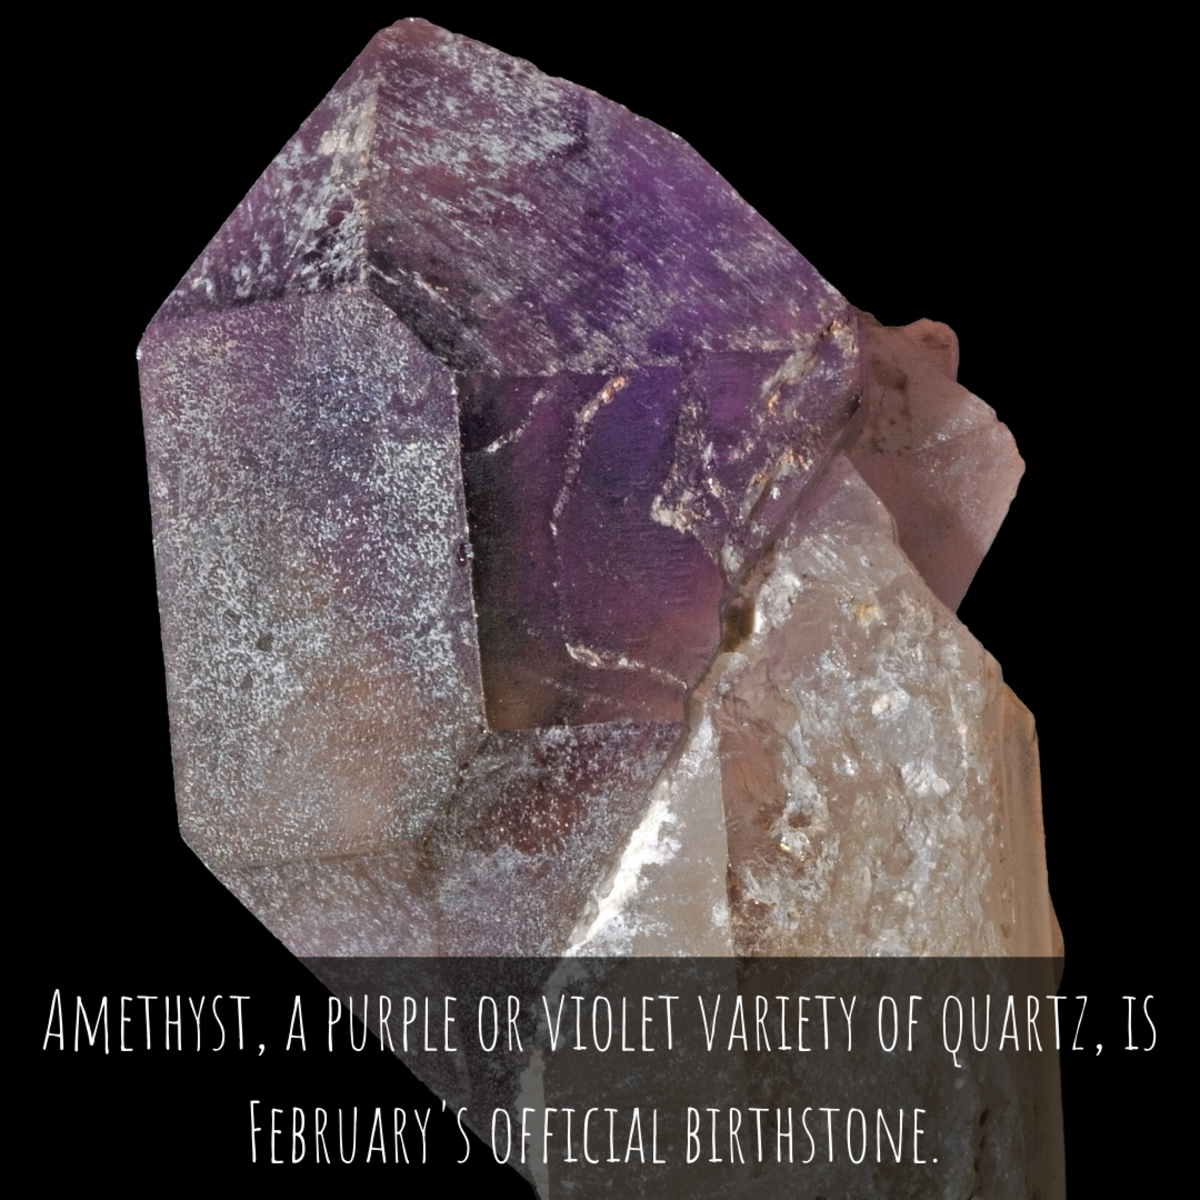 Amethyst is February's official birthstone.